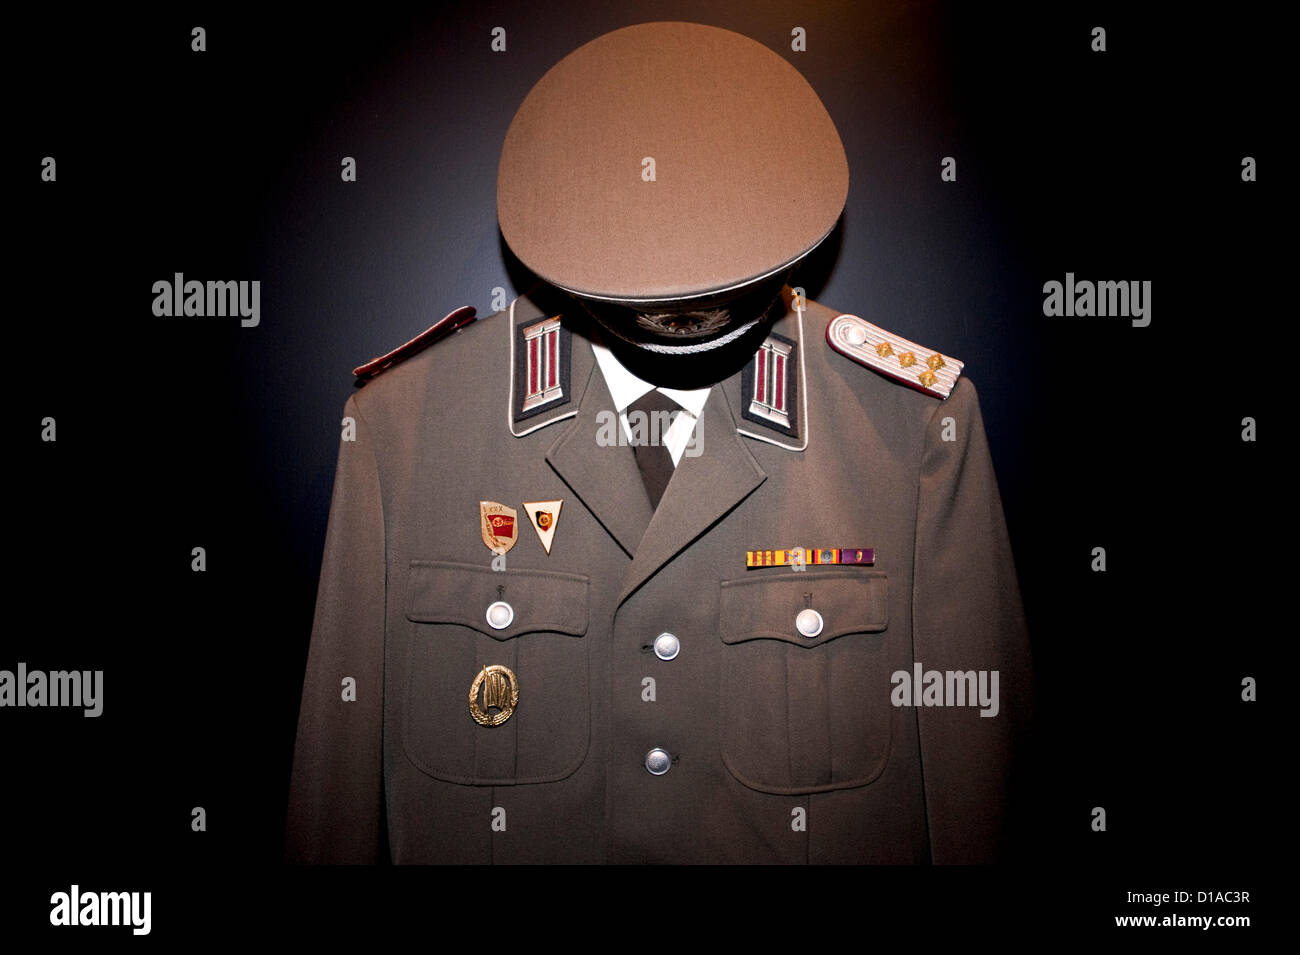 Dec. 12, 2012 - Culver City, CA, US -  An East German military uniform hangs on display at The Wende Museum, which - Stock Image